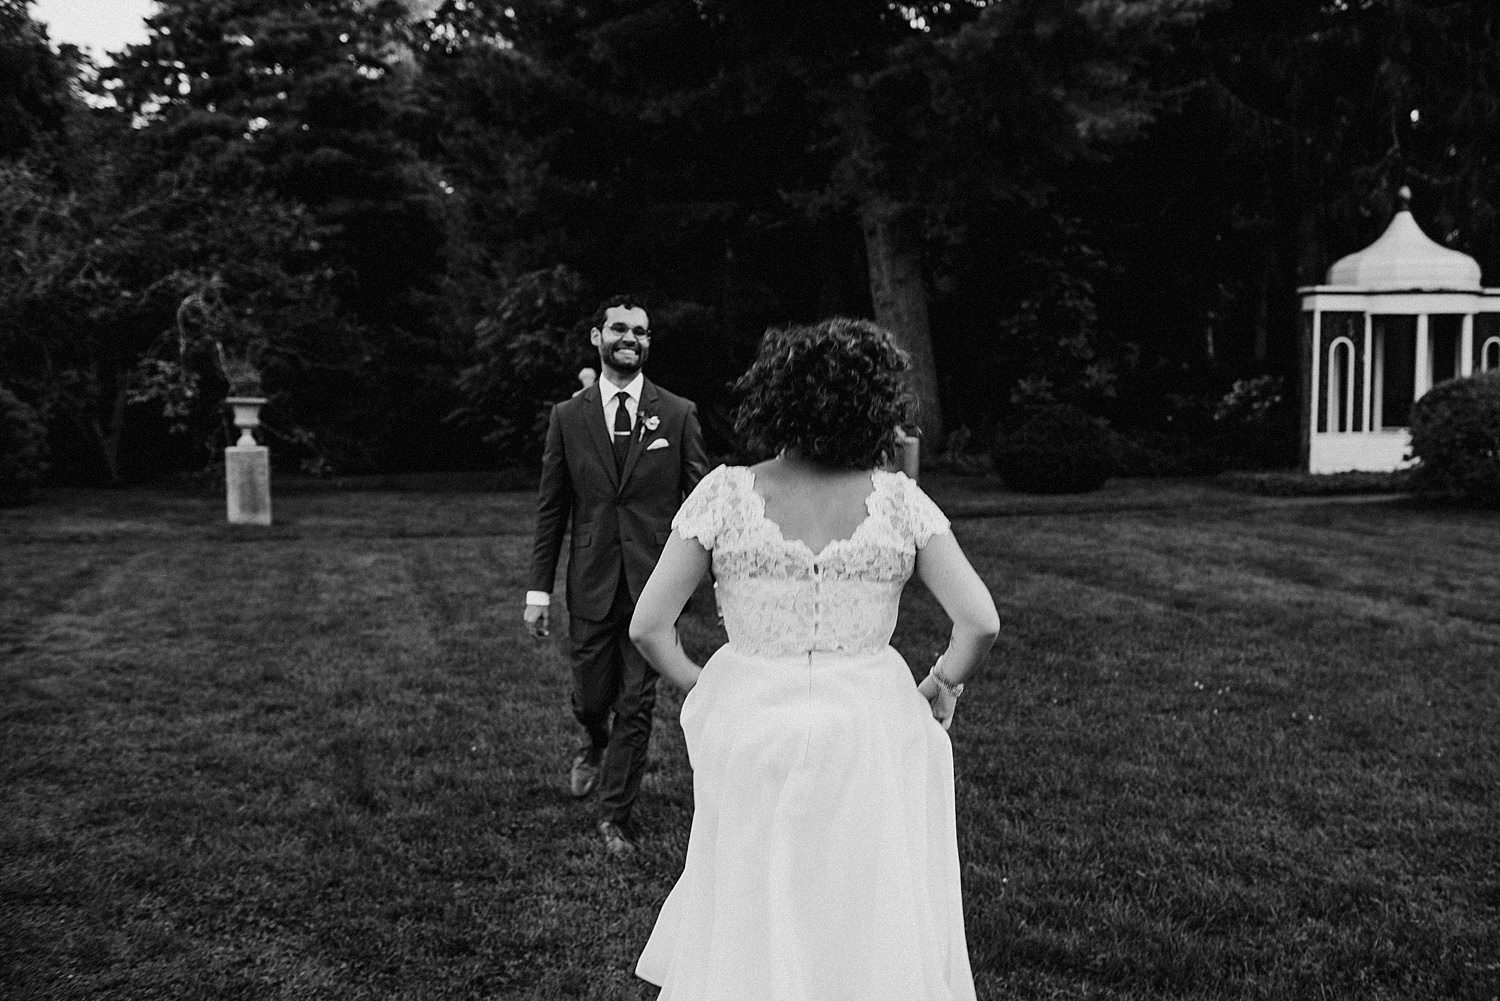 Bride running towards groom